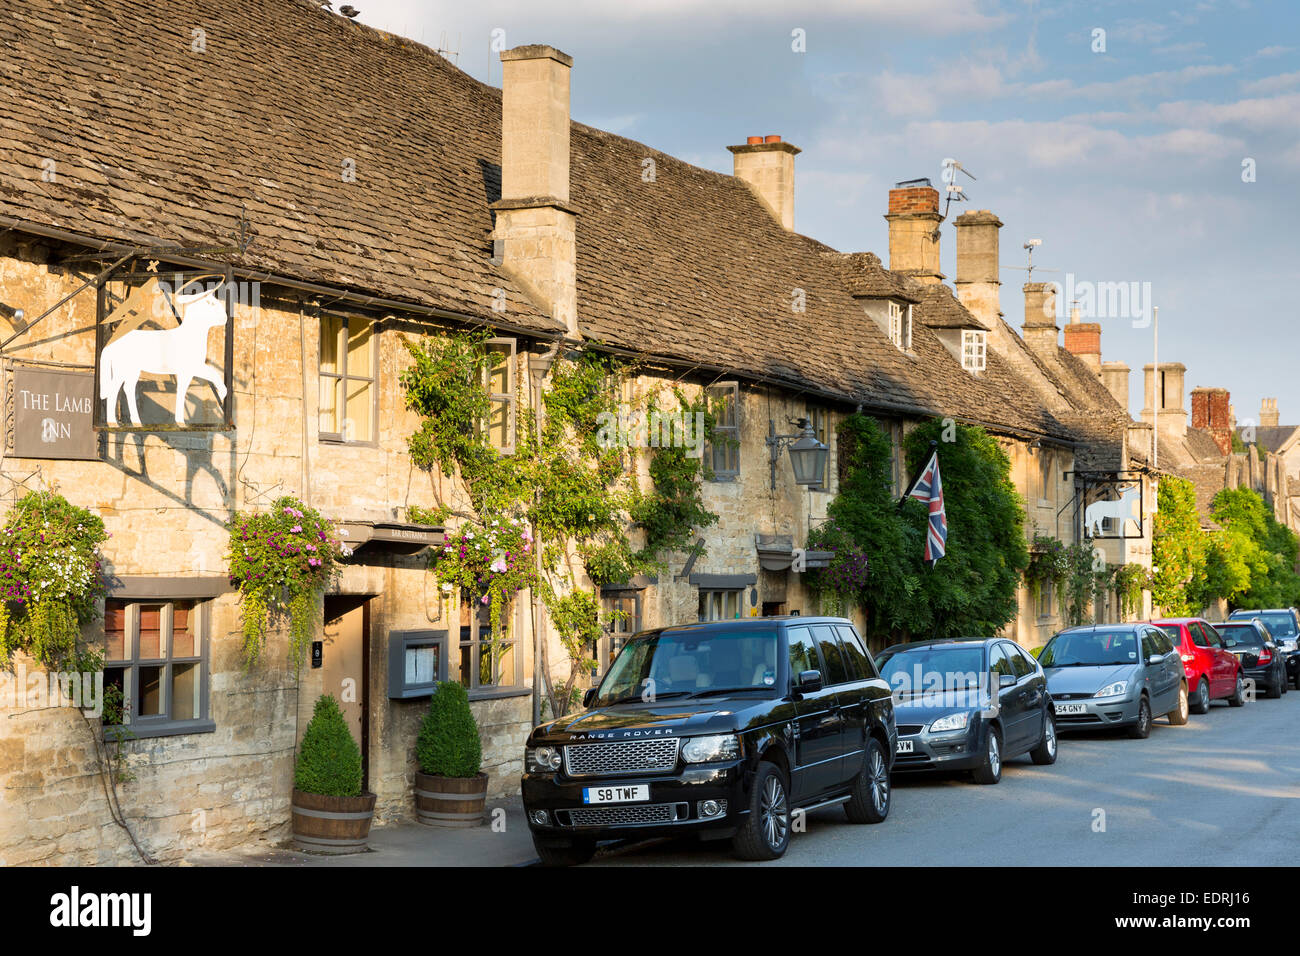 range rover 4 x 4 parked at the lamb inn traditional old gastro pub stock photo royalty free. Black Bedroom Furniture Sets. Home Design Ideas